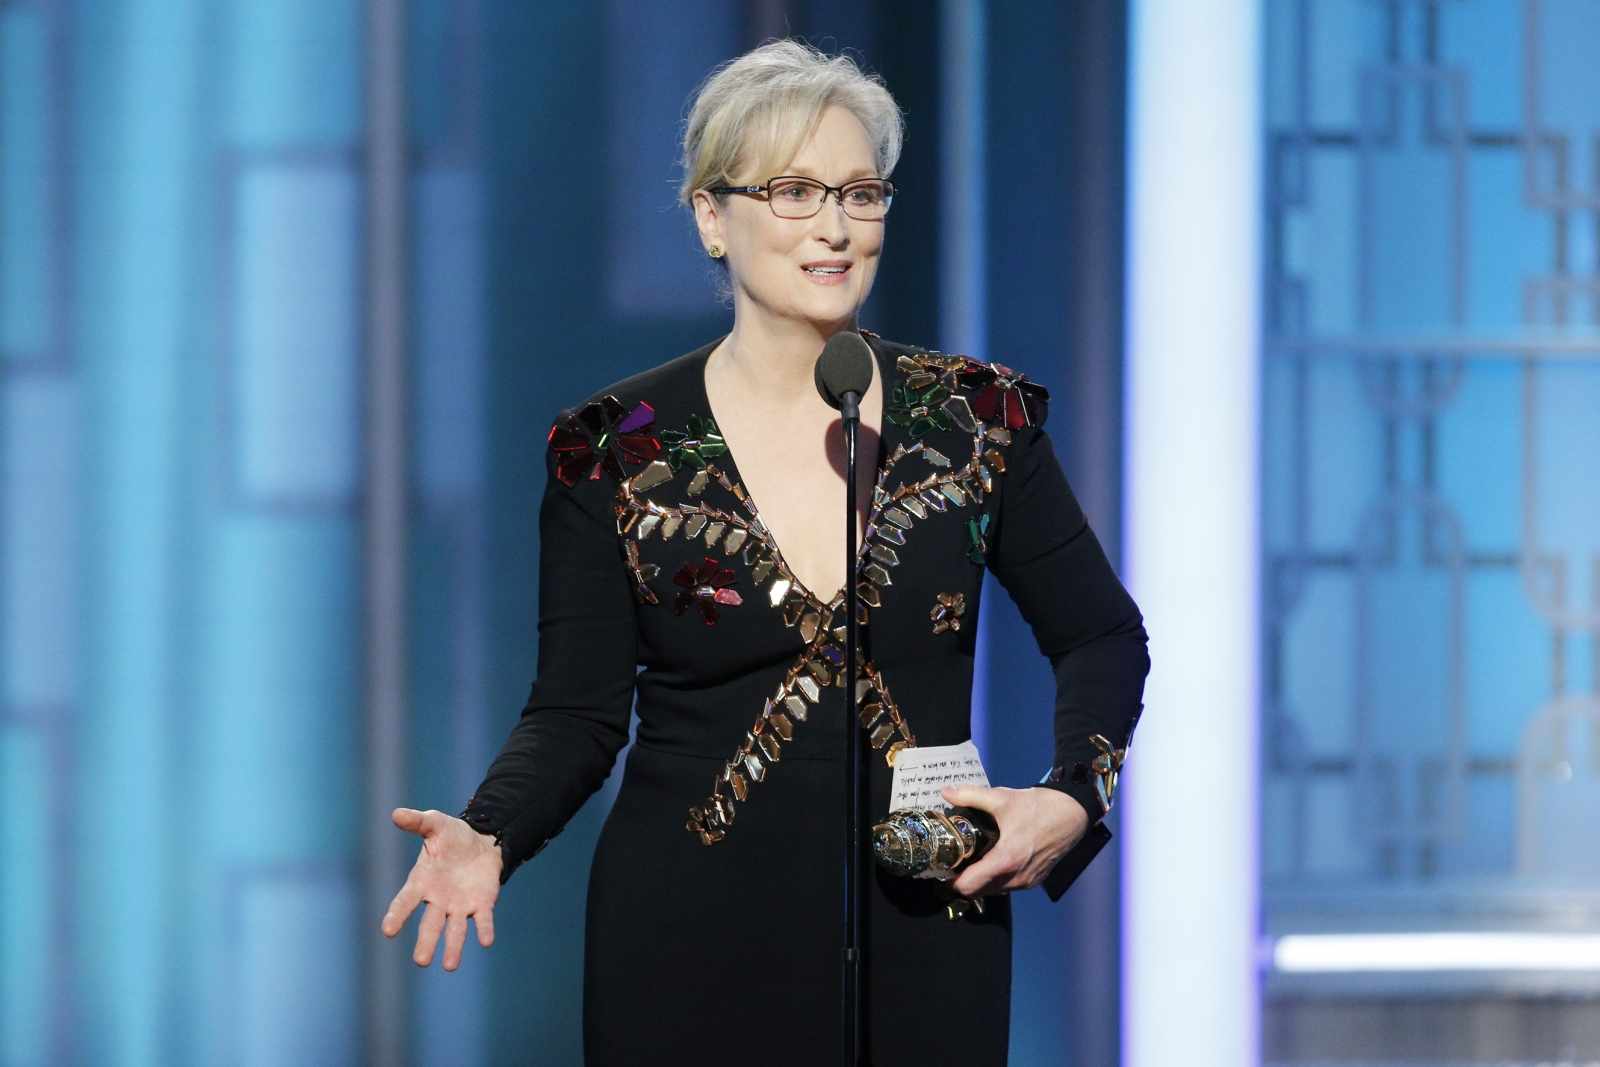 """Disrespect invites disrespect, violence incites violence. When the powerful use their position to bully others we all lose"" - Meryl Streep"